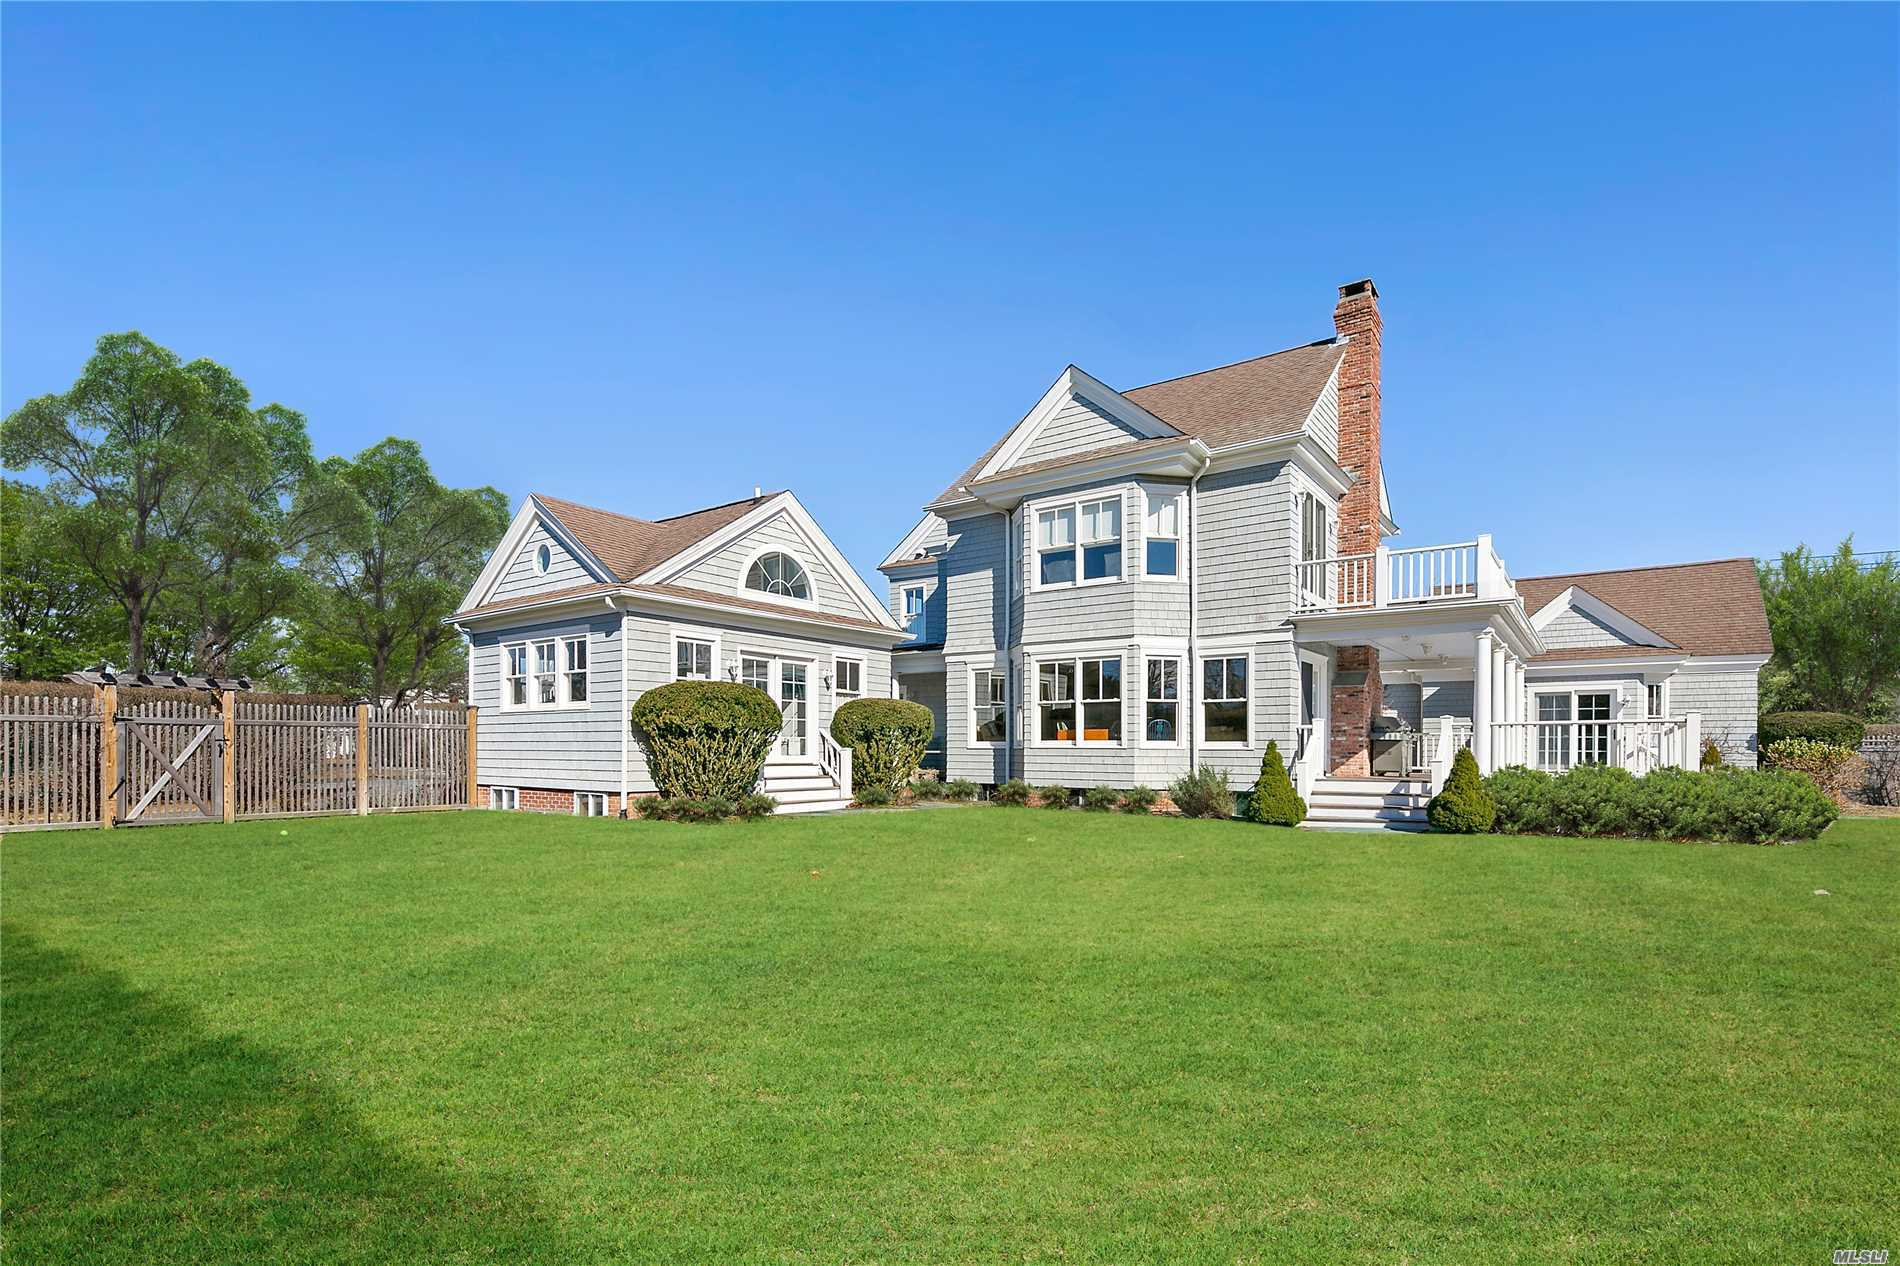 This magnificent three-story traditional home is quintessential Quogue. Set on .78 acres of manicured grounds. Full renovation completed in 2002. Gourmet kitchen with top of the line appliances opens to family room with fireplace. Additional 1st floor family room could be a Master Suite. Library with fireplace. Grand 2nd floor master with sitting area/office and private deck. Three bedrooms and 2 baths. 3rd floor has 3 bedrooms and bath. Gunite pool, pool house with bath and art studio.